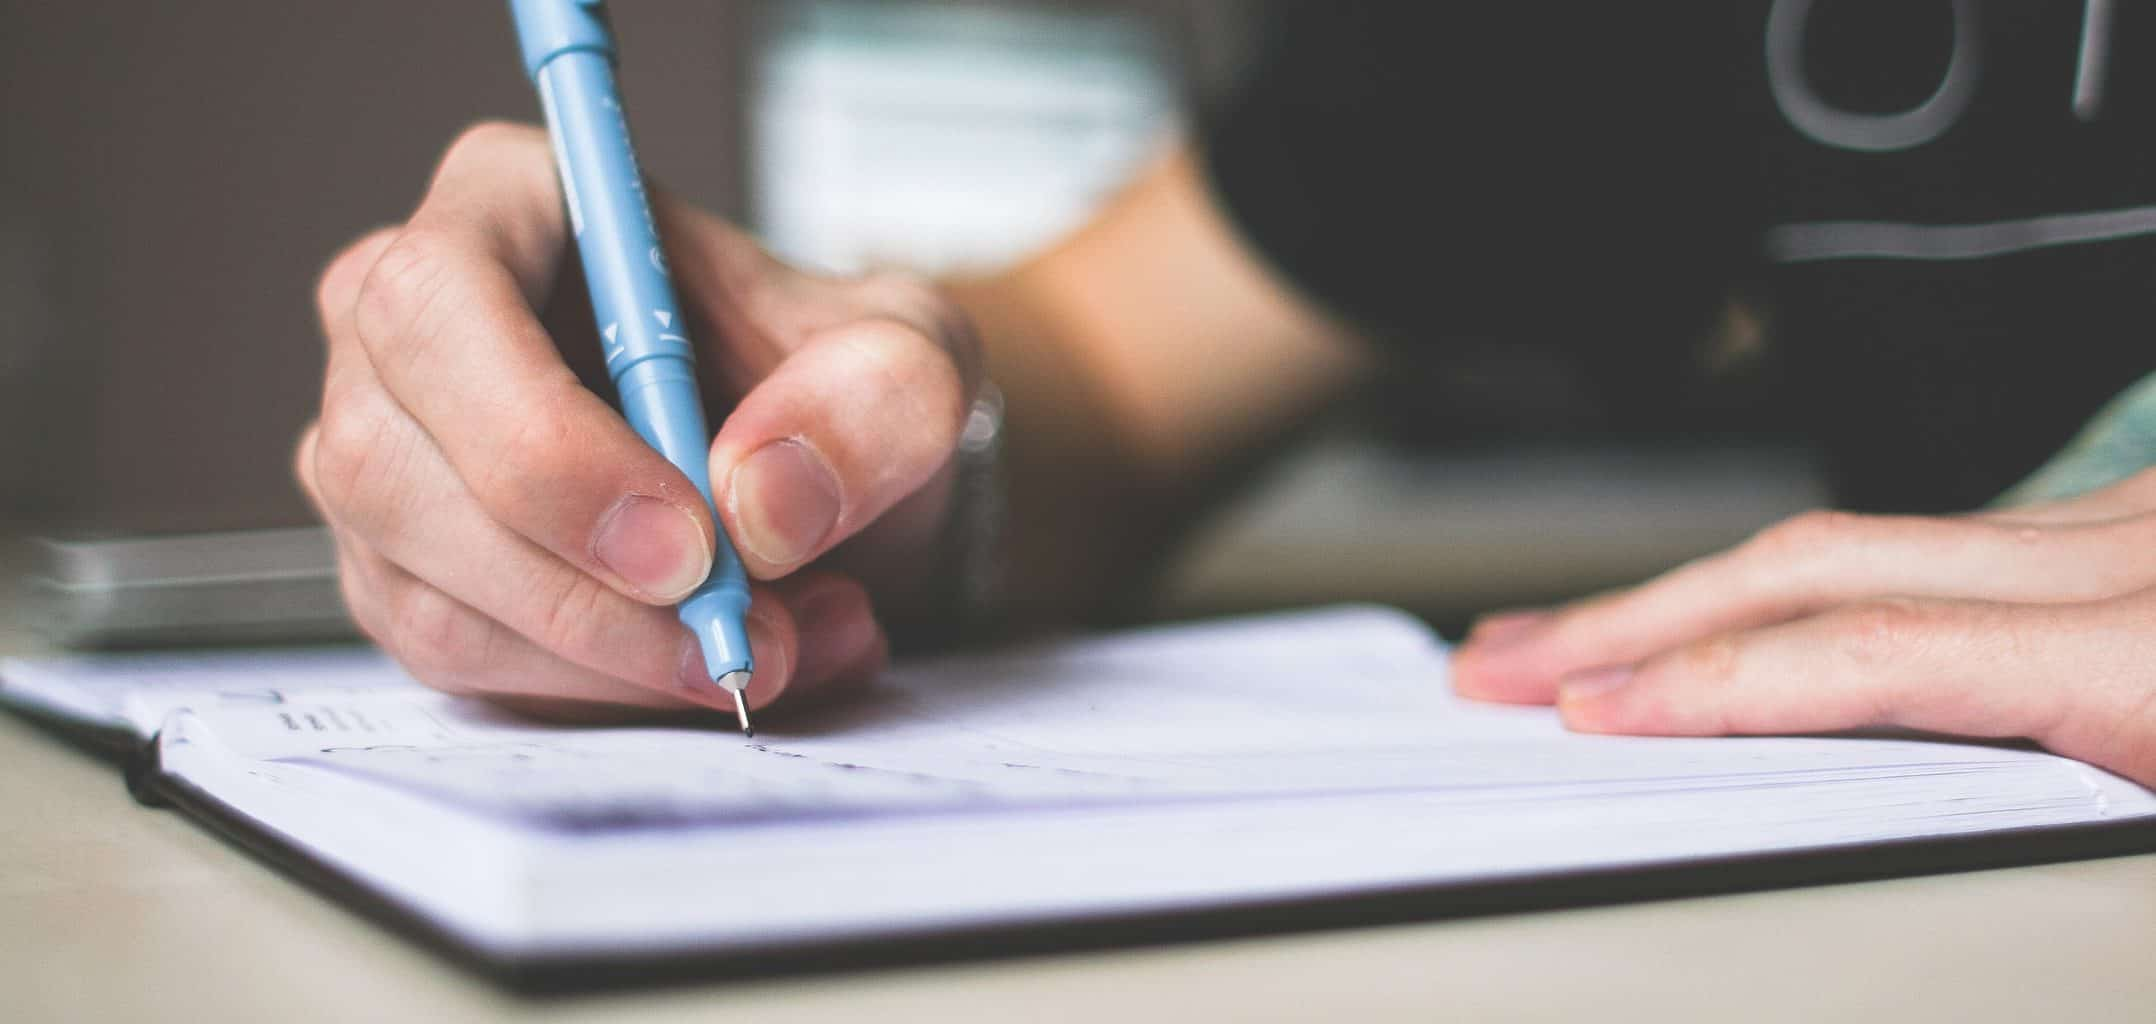 A person writing in a notebook with a blue ballpoint pen.